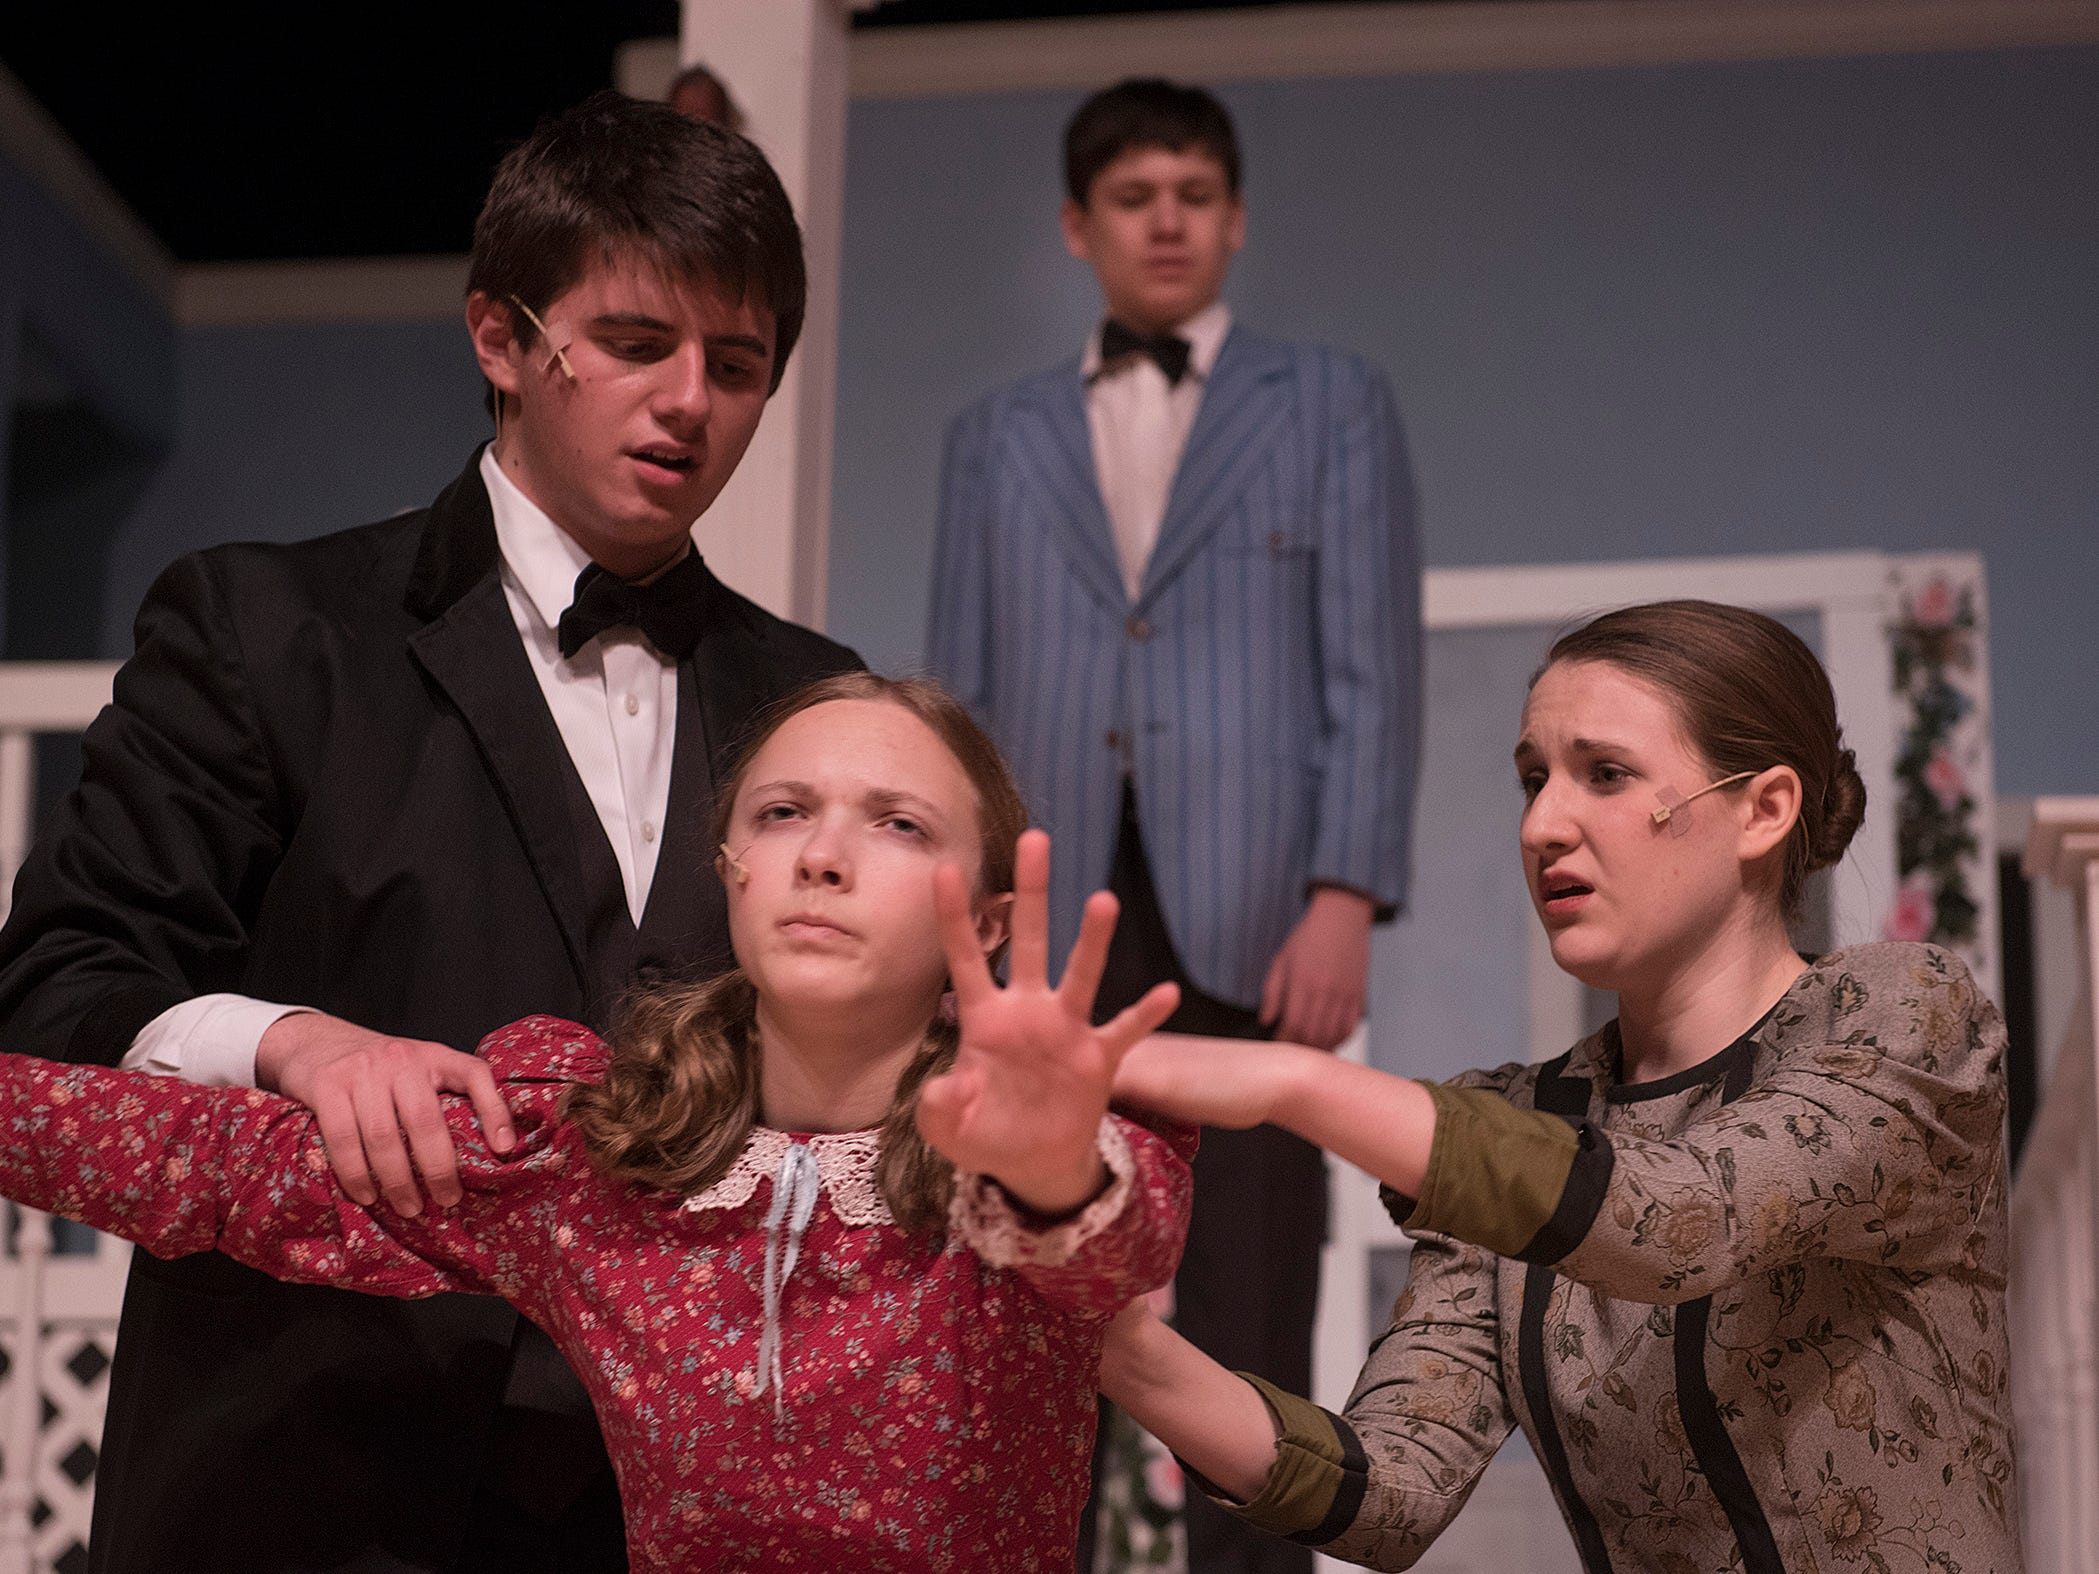 Helen's (Jillian Bocketti) family, Captain Keller (Charles Hilu), Kate Keller (Emma Pickett) and half-brother James (Nick Czarnota) react to the profound change in her daughter as they hear that Helen is learning to communicate.